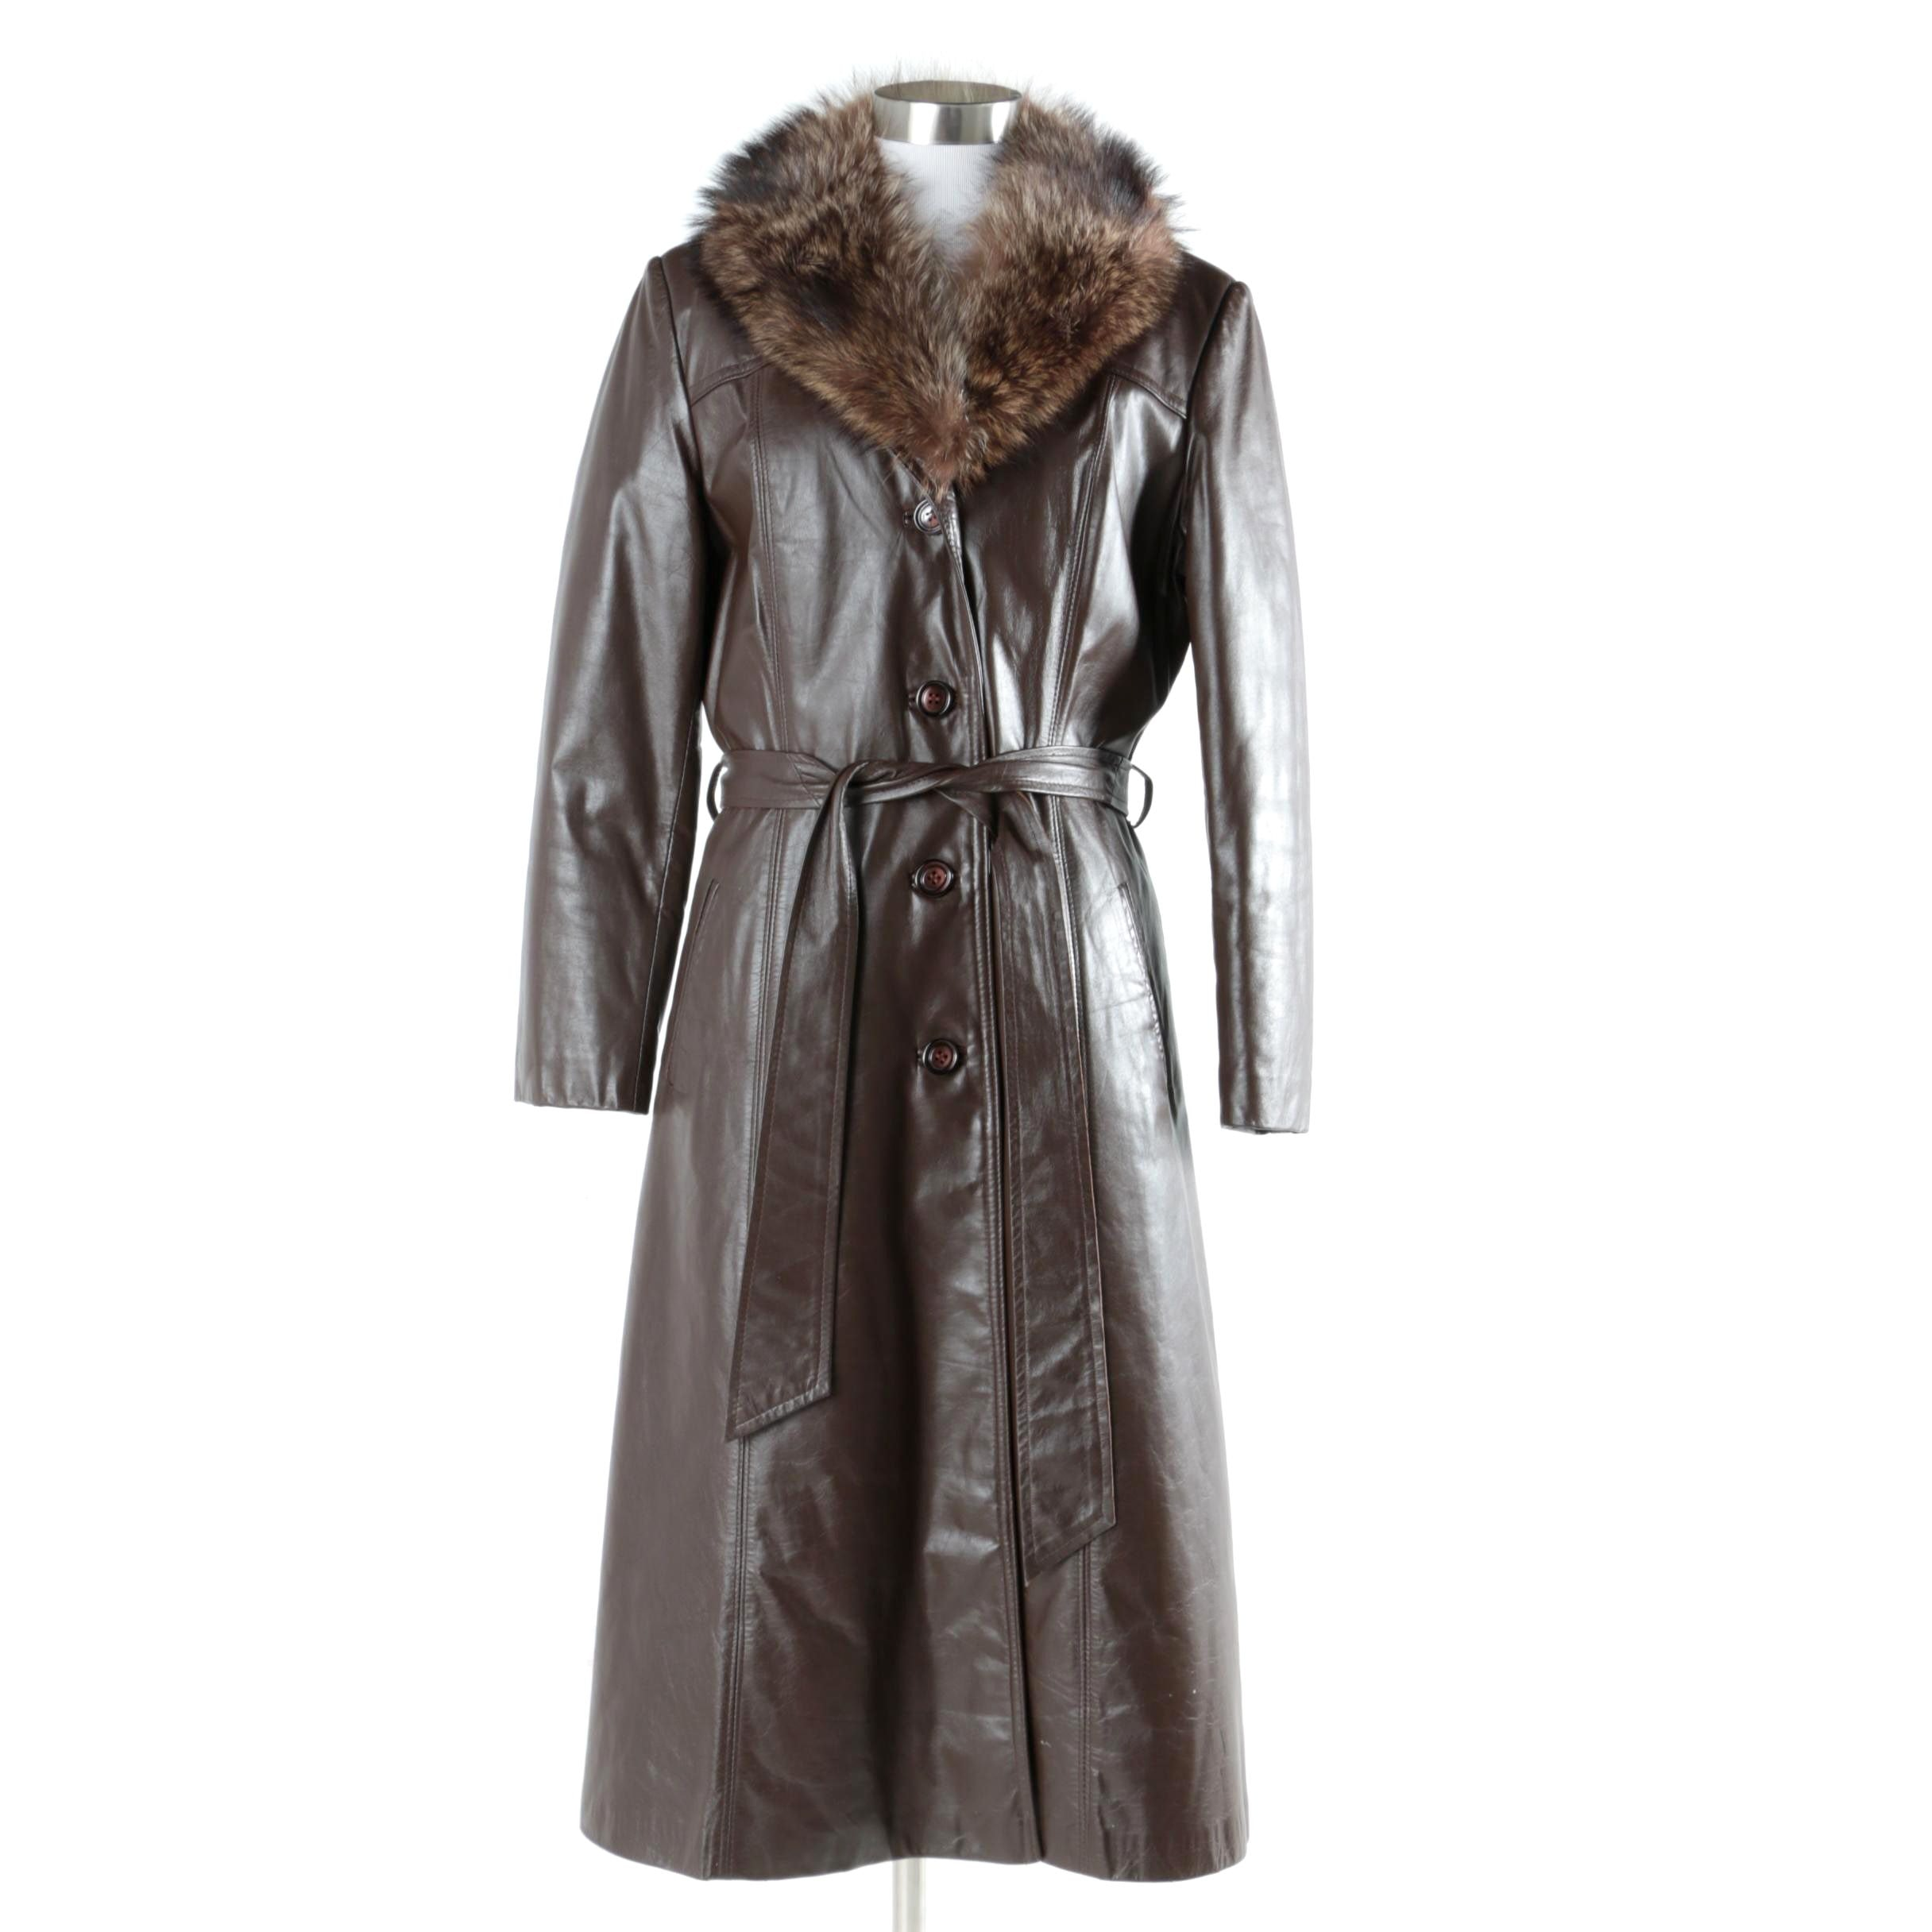 Women's Vintage Brown Leather Coat with Raccoon Fur Collar